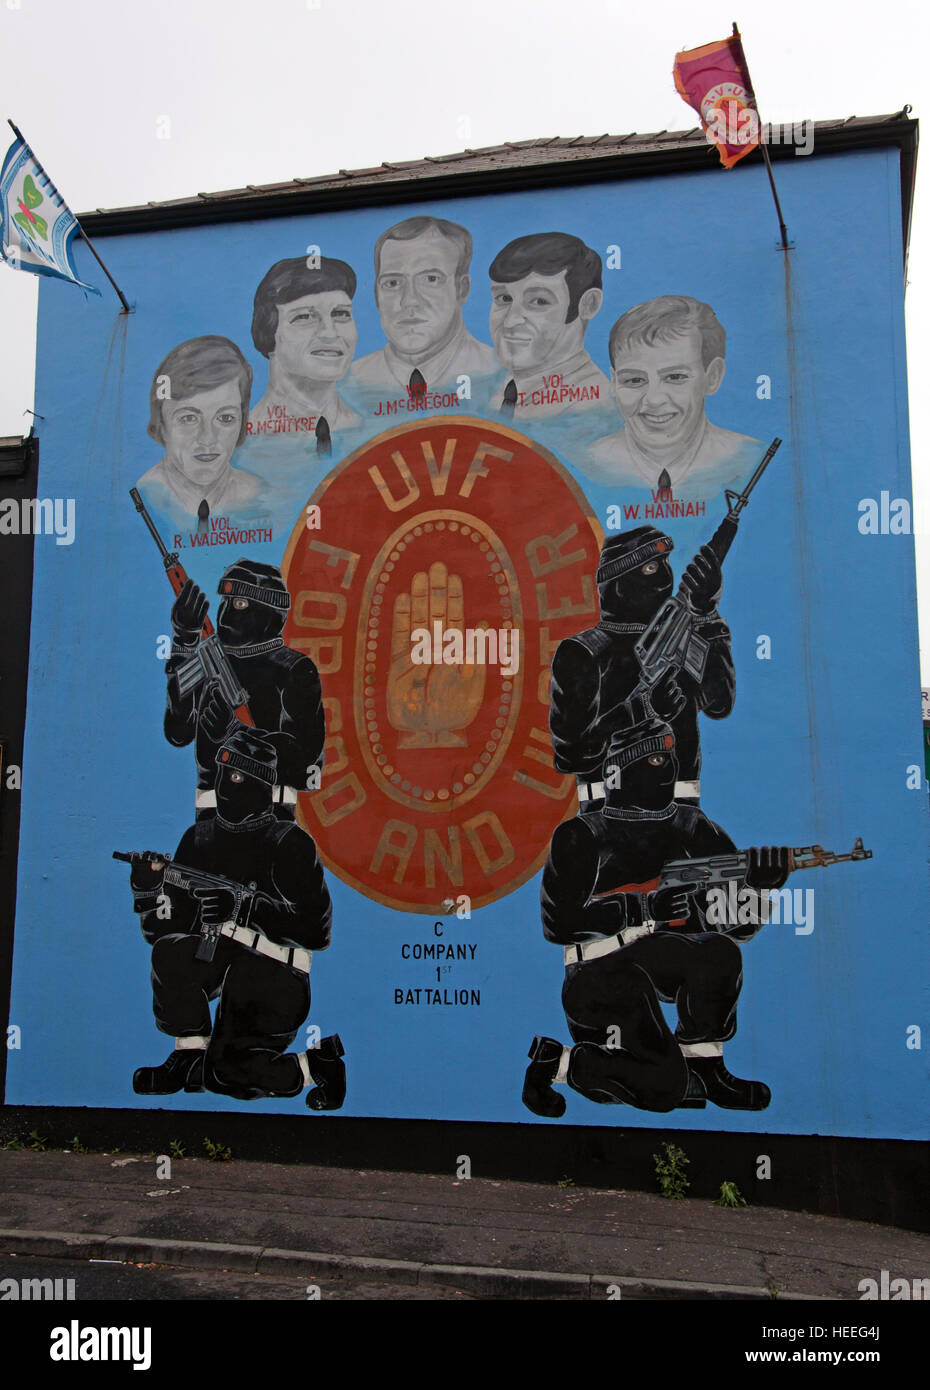 Mural,art,British,Union,wall,walls,gable end,gable,end,Northern,Irish,Republican,violence,para,military,paramilitary,fallen,Martyrs,martyr,street,rd,road,painting,painted,symbolism,Loyalist,culture,history,community,c,C-Company,1st,Battalion,Wadsworth,McIntyre,McGregor,Chapman,Hannah,blue,GoTonySmith,@HotpixUK,Tony,Smith,UK,GB,Great,Britain,United,Kingdom,Irish,British,Ireland,problem,with,problem with,issue with,NI,Northern,Northern Ireland,Belfast,City,Centre,Art,Artists,the,troubles,The Troubles,Good Friday Agreement,Peace,honour,painting,wall,walls,tribute,republicanism,Fight,Justice,West,Beal,feirste,martyrs,social,tour,tourism,tourists,urban,six,counties,6,backdrop,county,Antrim,hidden,faces,Belfast streets,Buy Pictures of,Buy Images Of,Images of,Stock Images,Tony Smith,United Kingdom,Great Britain,British Isles